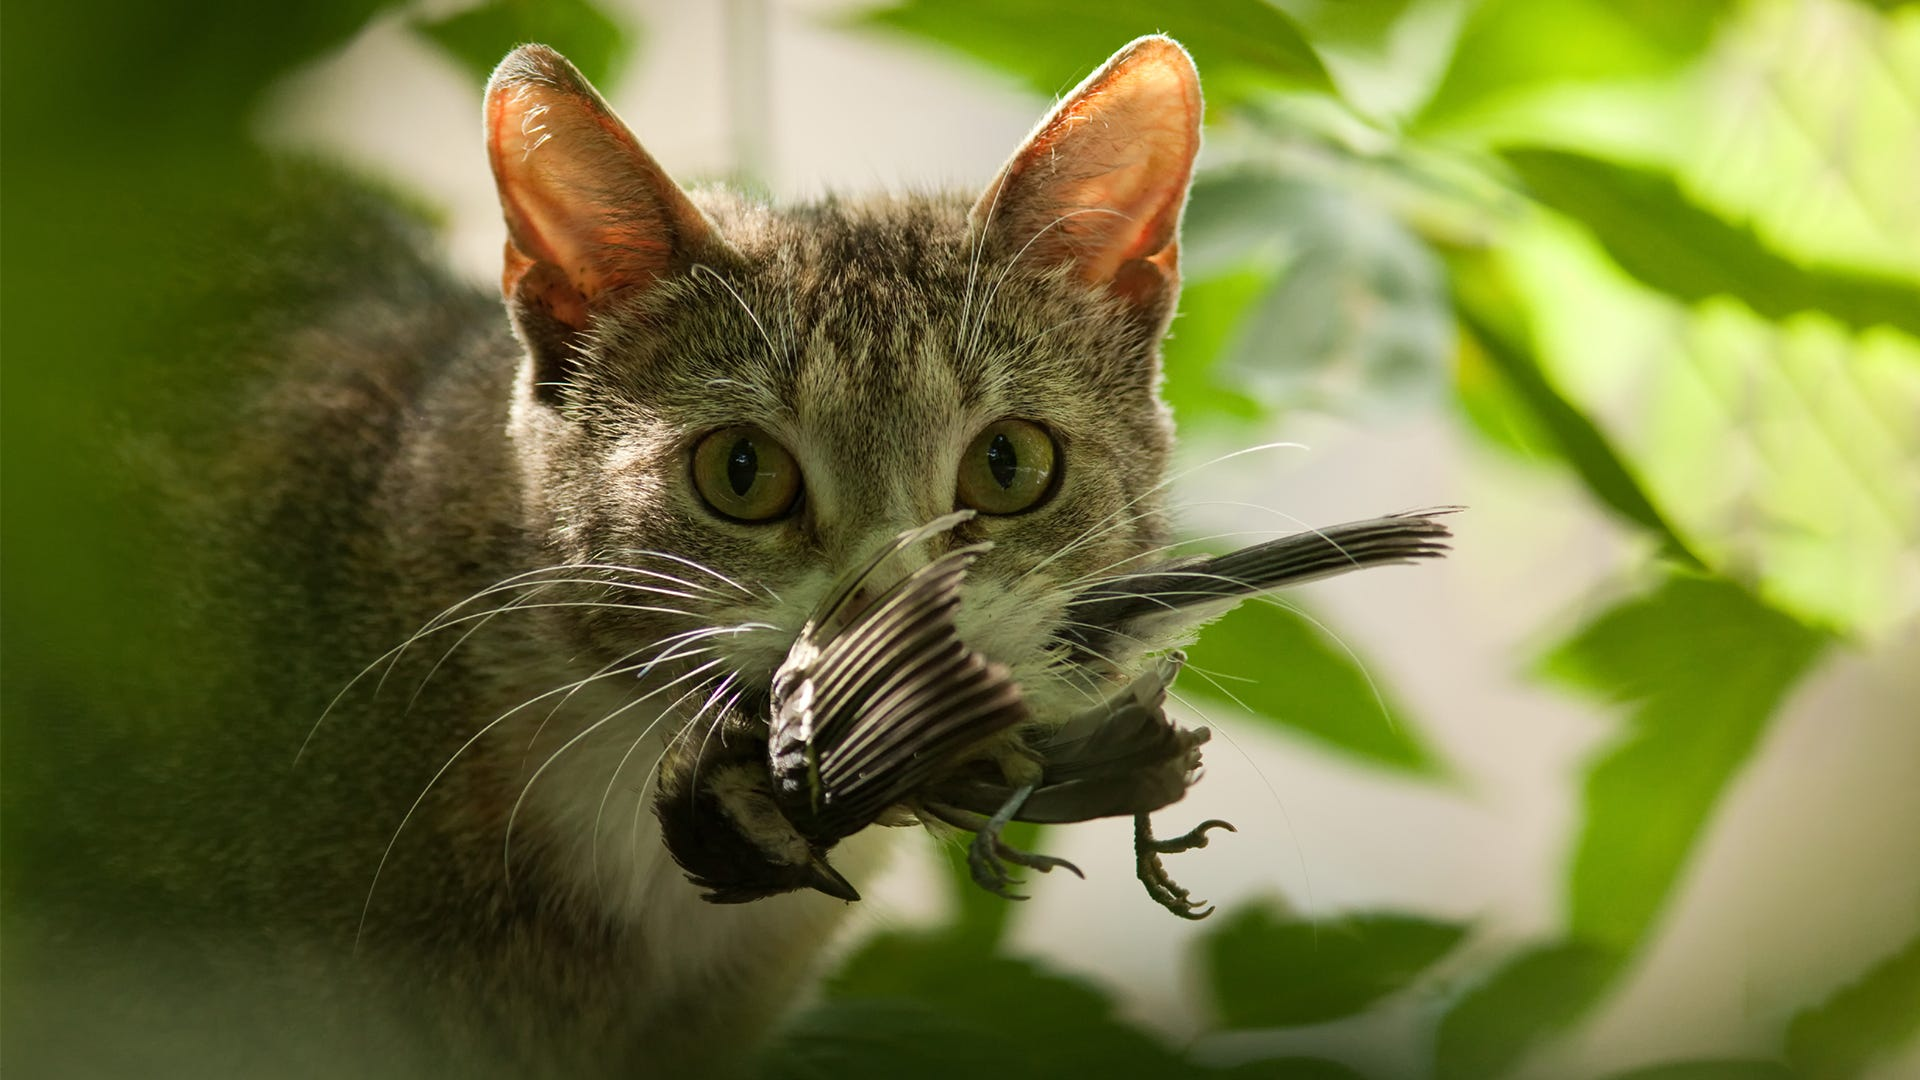 Wild Birds Be Wary - Cats Are On the Hunt!